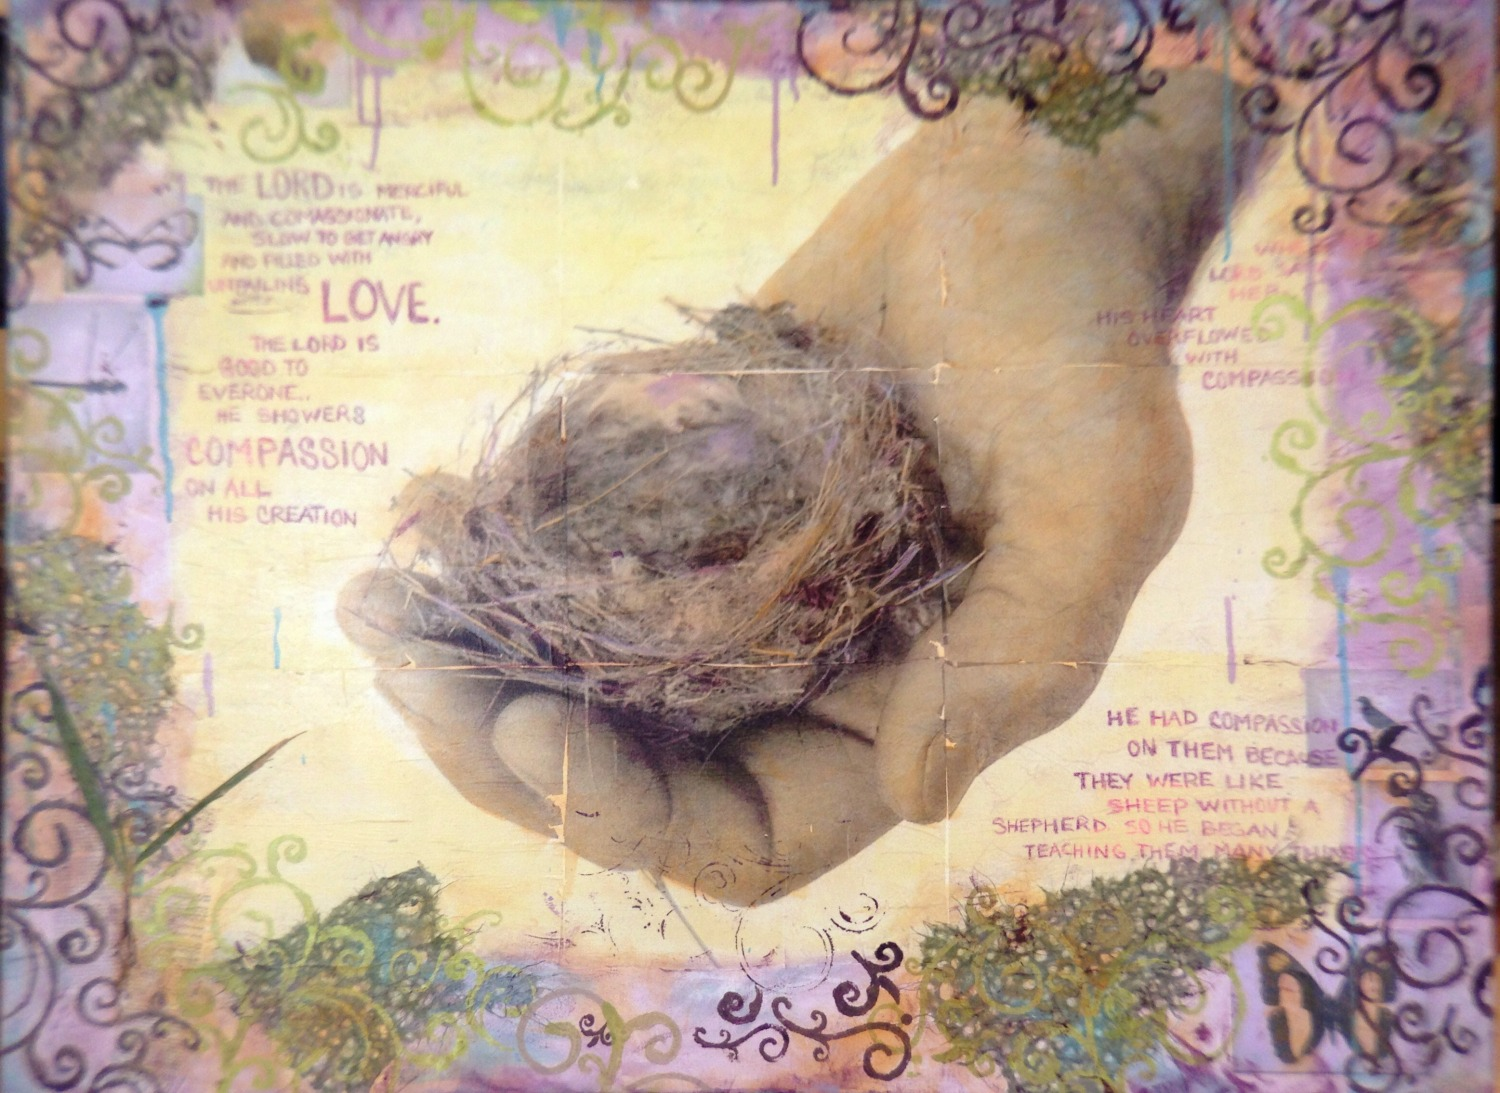 Compassion - photo transfers and mixed media on canvas by Judith Monroe